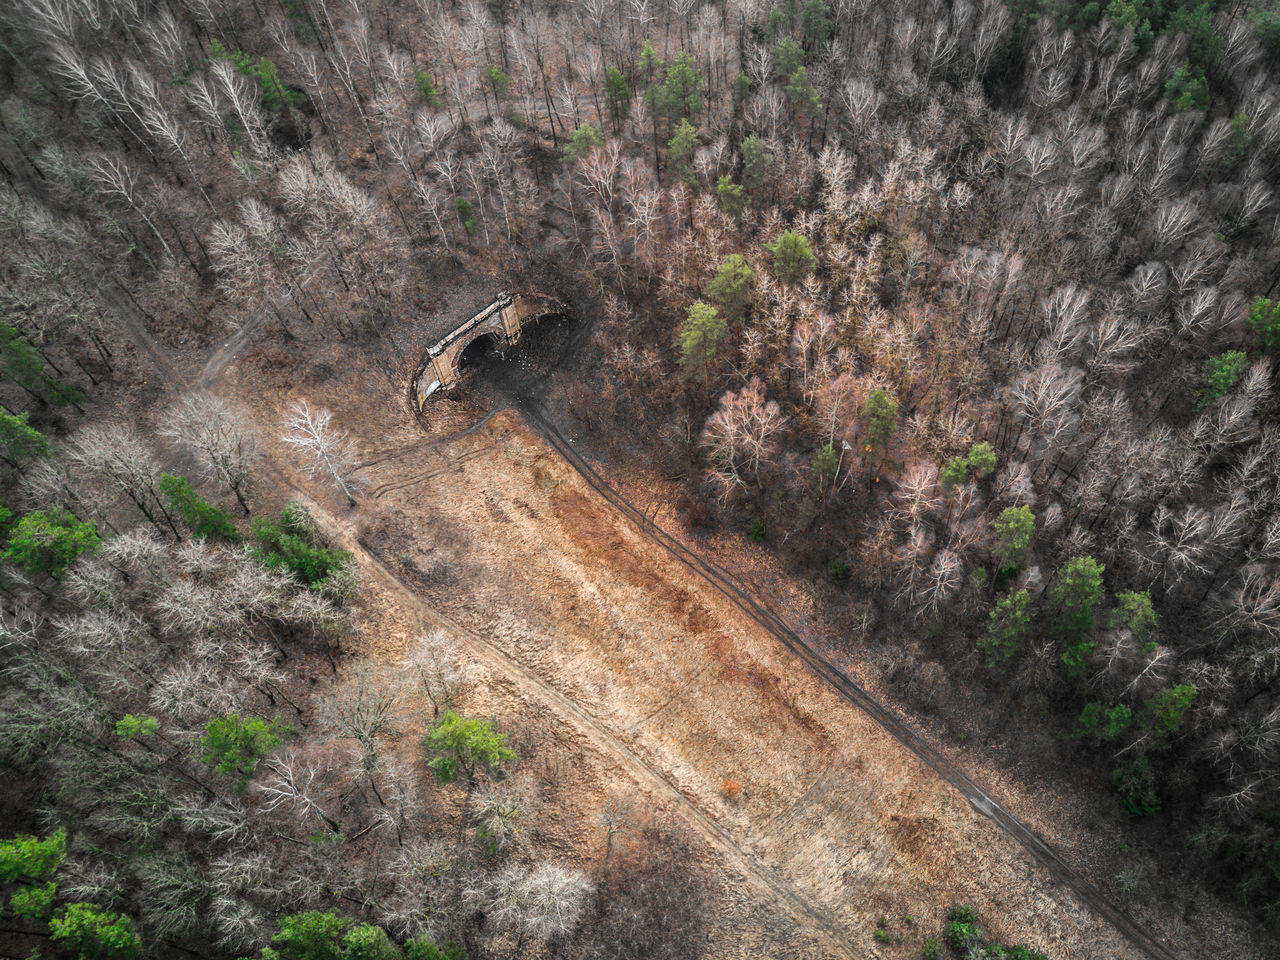 Abandoned and old railway tunnel - aerial shot from Dji mavic pro in forest / Paneriu tunelis Abandoned Aerial Shot Aerial View Architecture Beauty In Nature Building Closed Dangerous Dji DJI Mavic Pro Drone  Dronephotography Forest High Angle View Landscape Landscape_Collection Mavic Mavic Pro Nature Old Paneriu Tunelis Railway Road Tree Tunnel